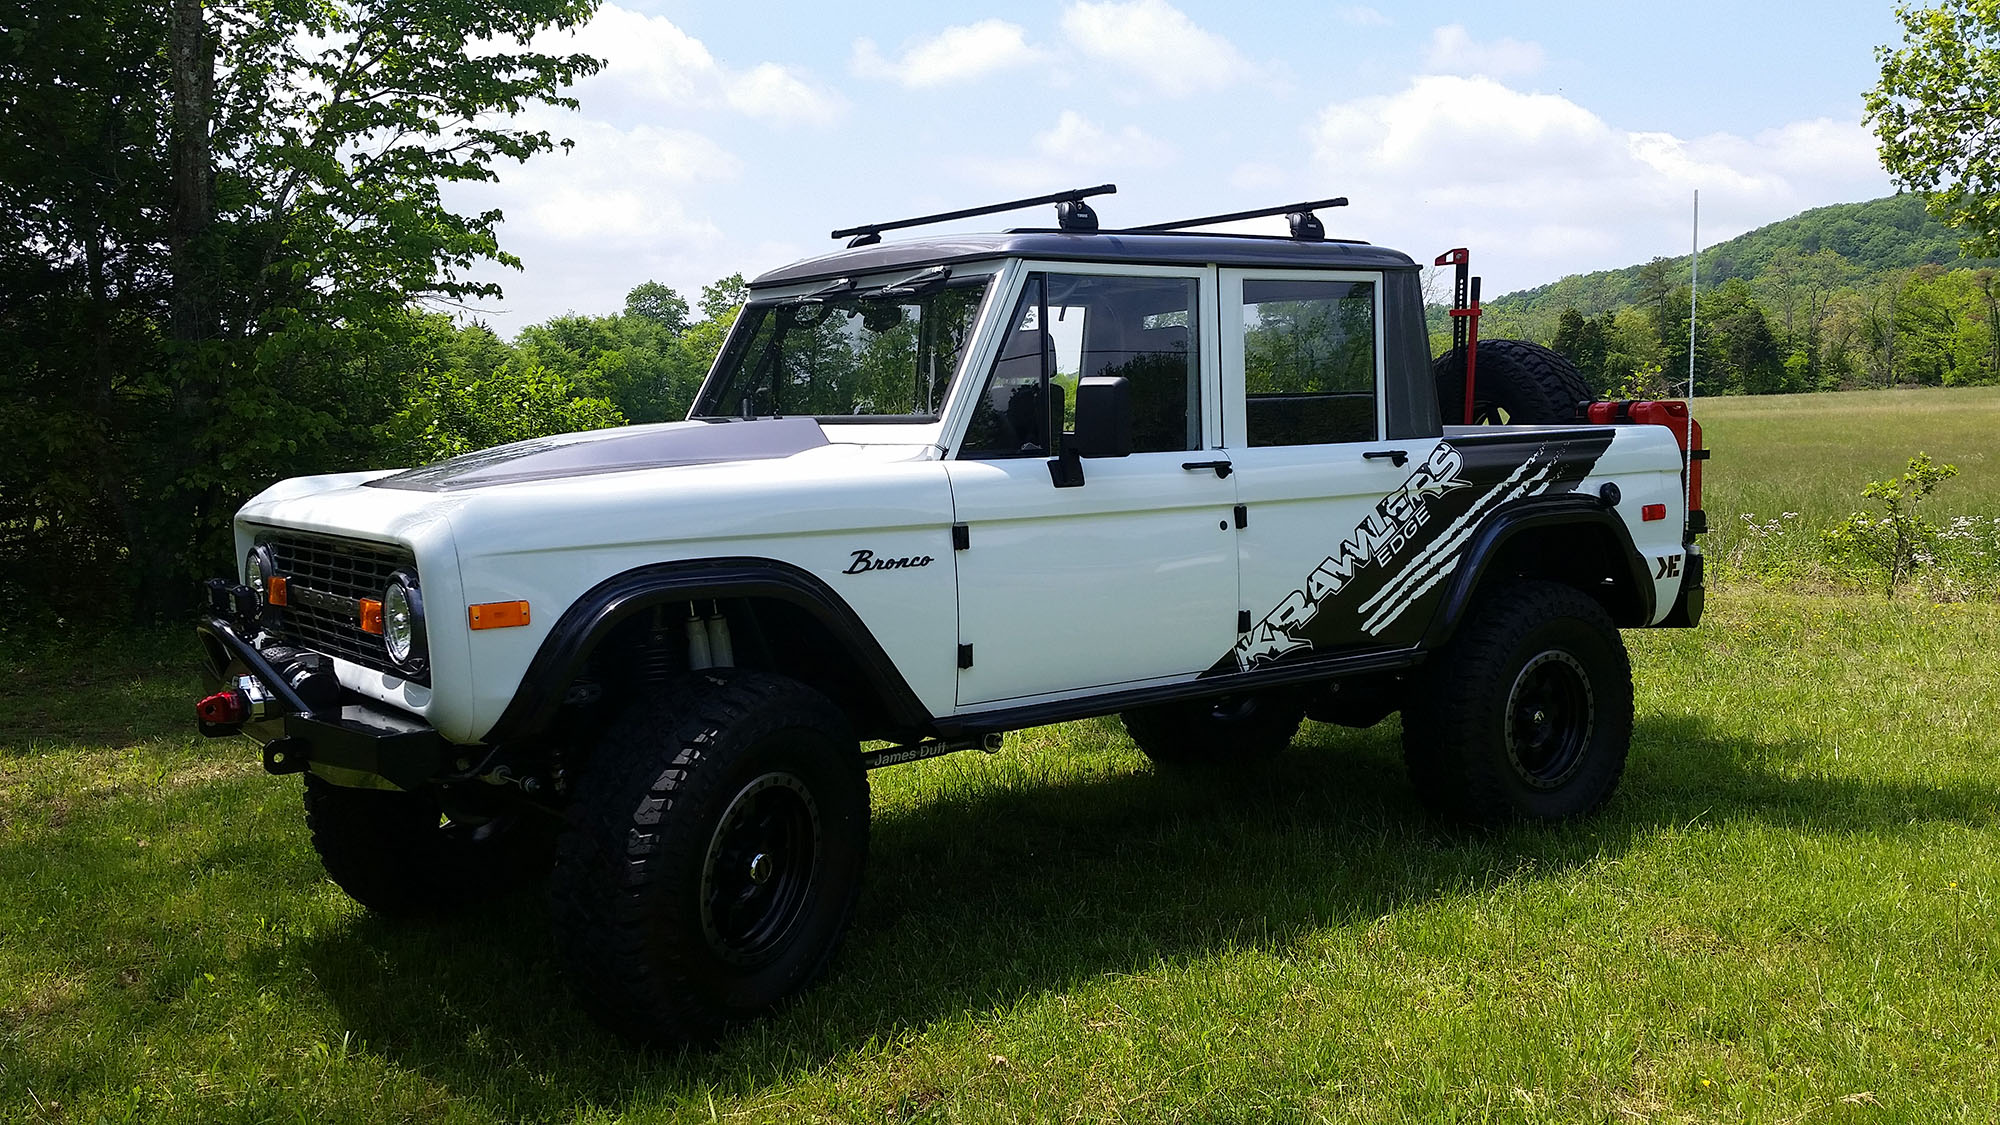 Early-Bronco-by-Krawlers-Edge-4-Door : bronco doors - pezcame.com